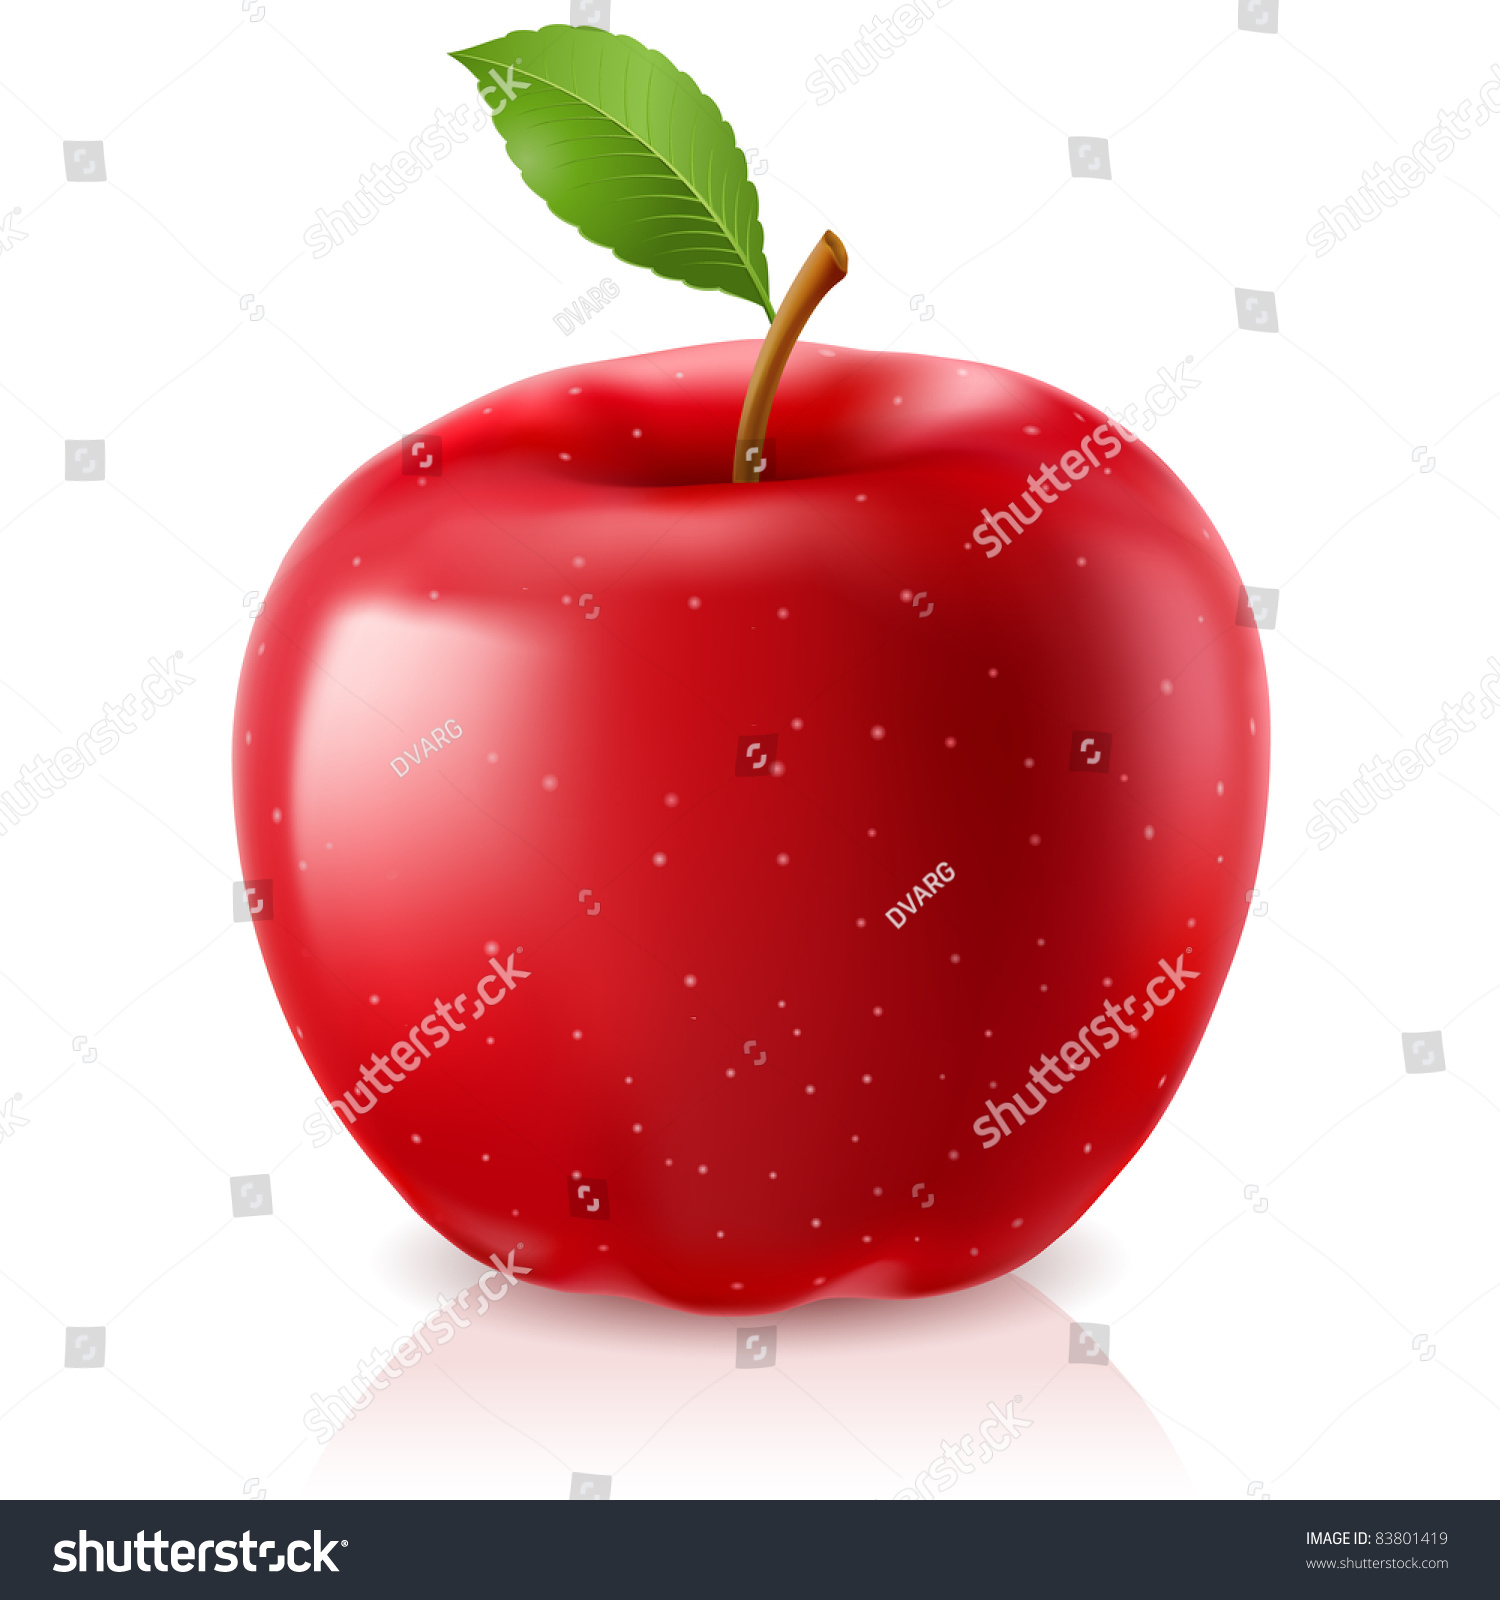 delicious green apple illustration-#15